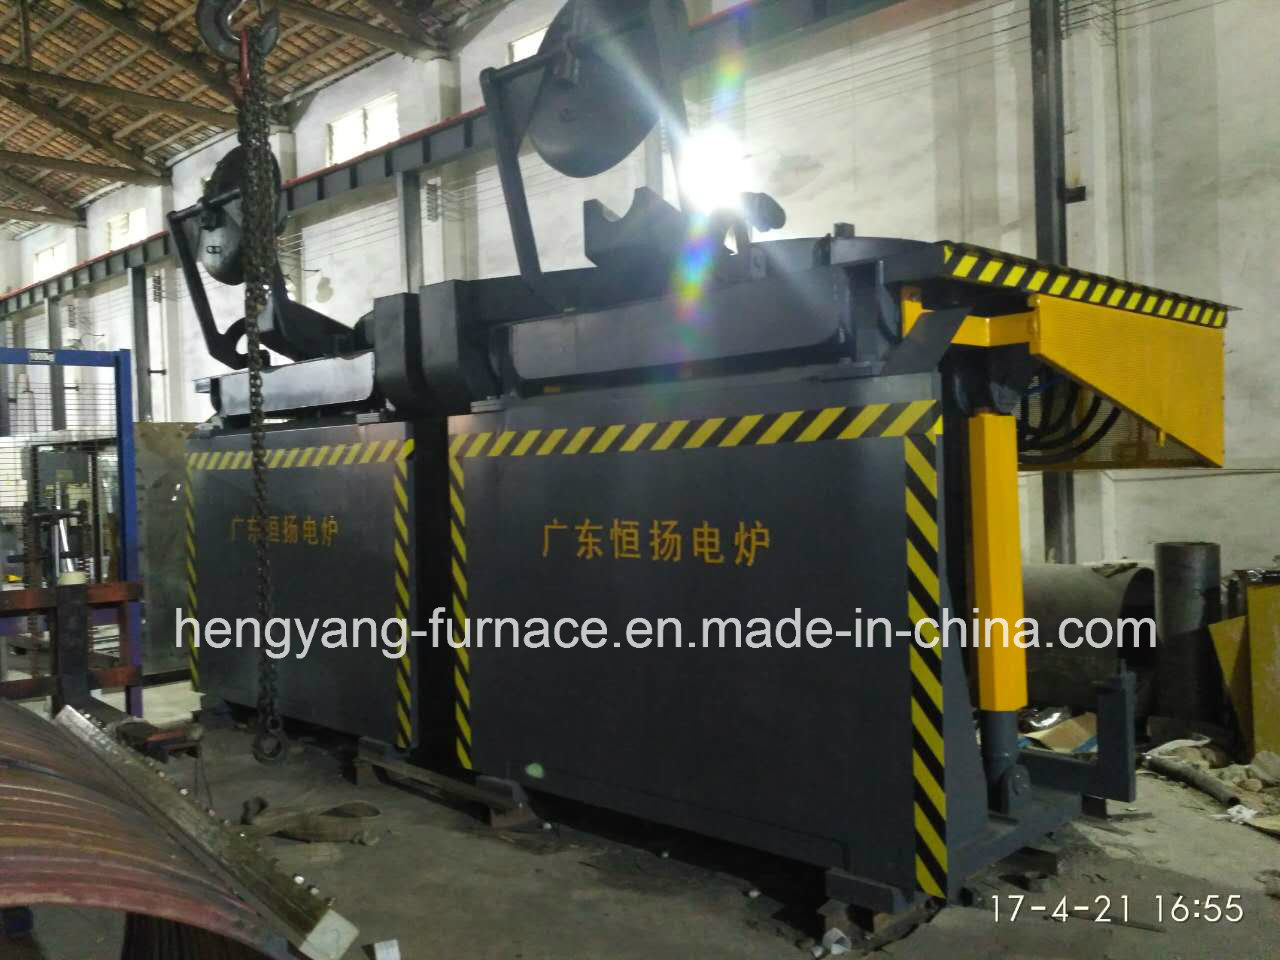 Melting Iron Induction Furnace